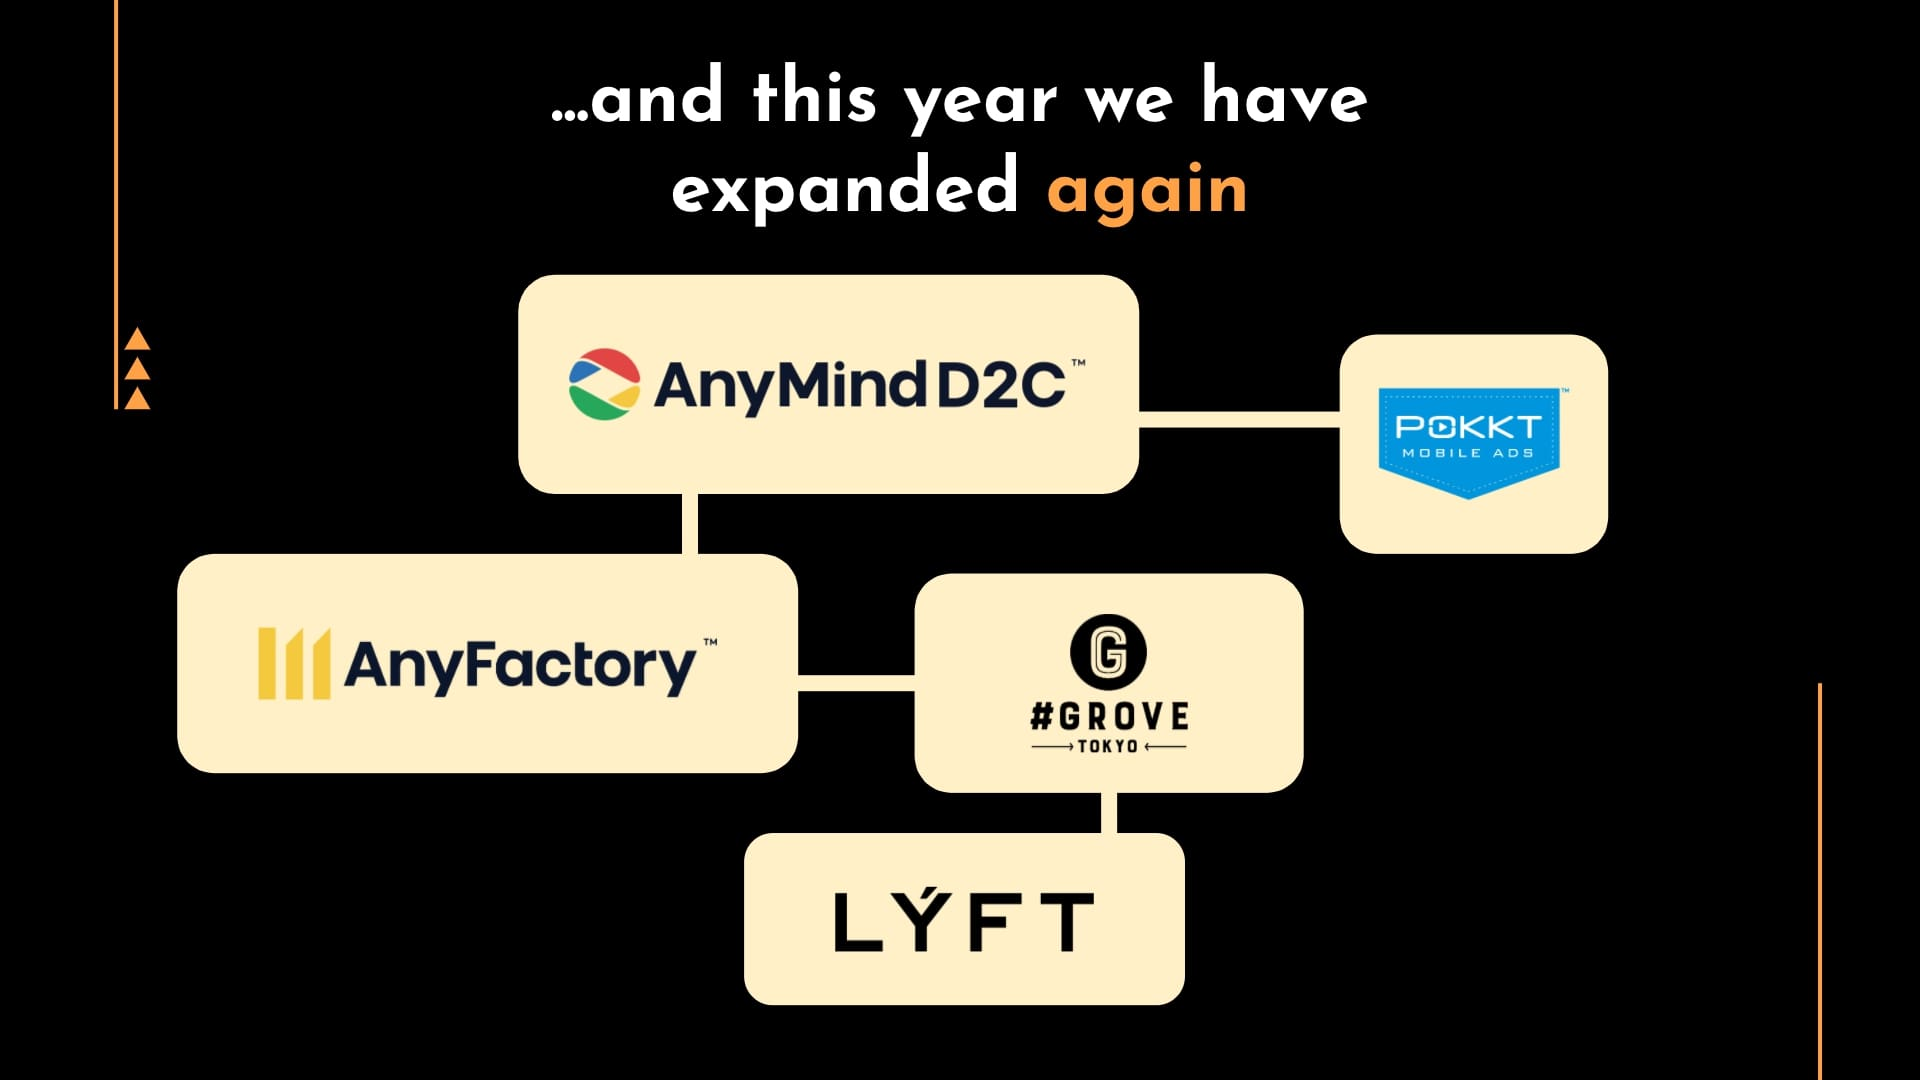 AnyMind 2020 expansions